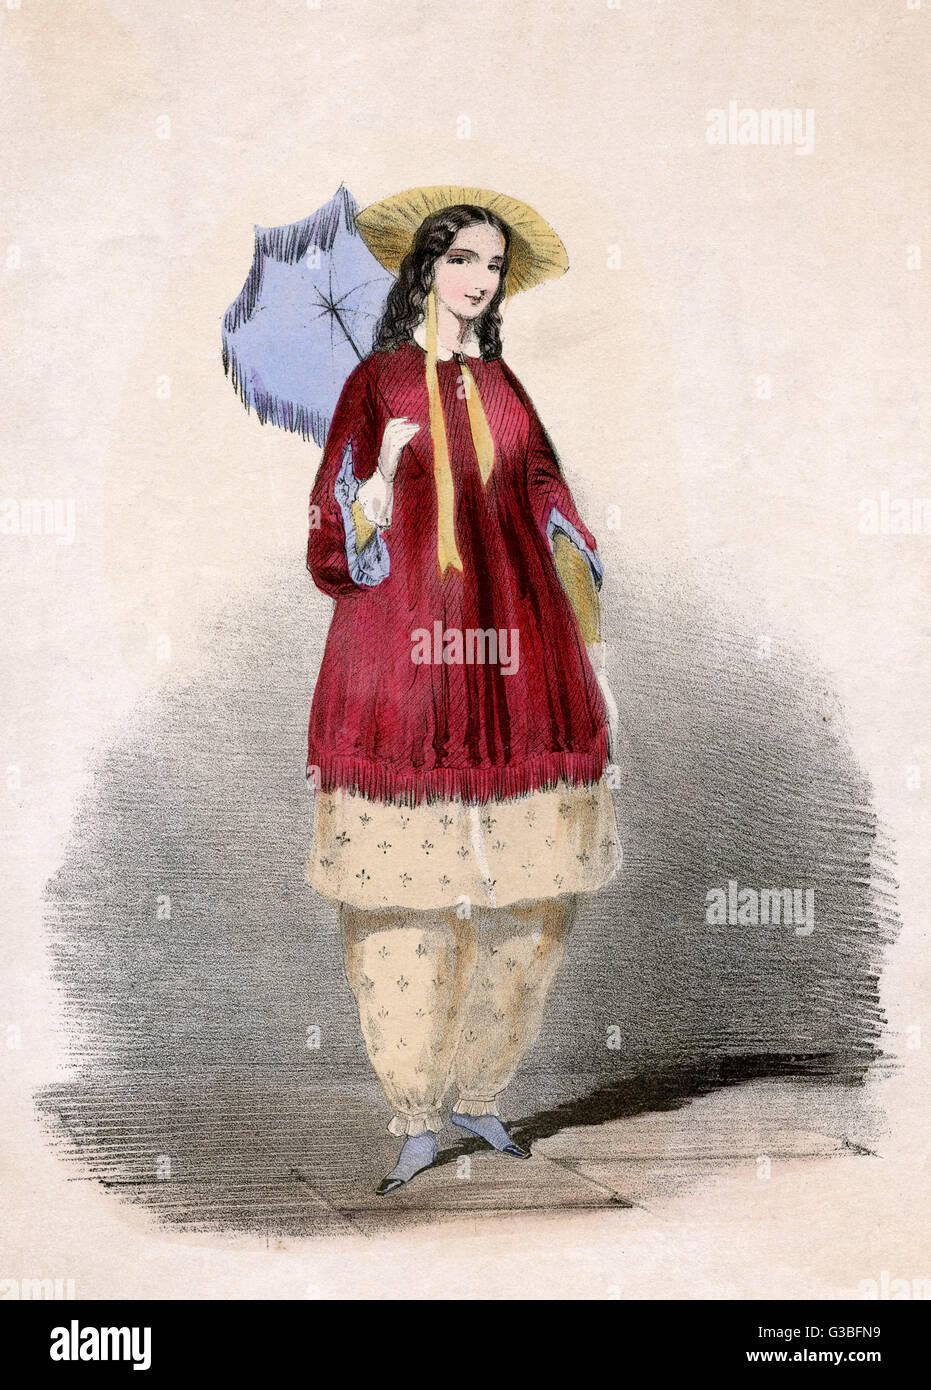 Arabella Bloomer holds a  fringed parasol in order to  retain her lady like  complexion.       Date: 1850s - Stock Image